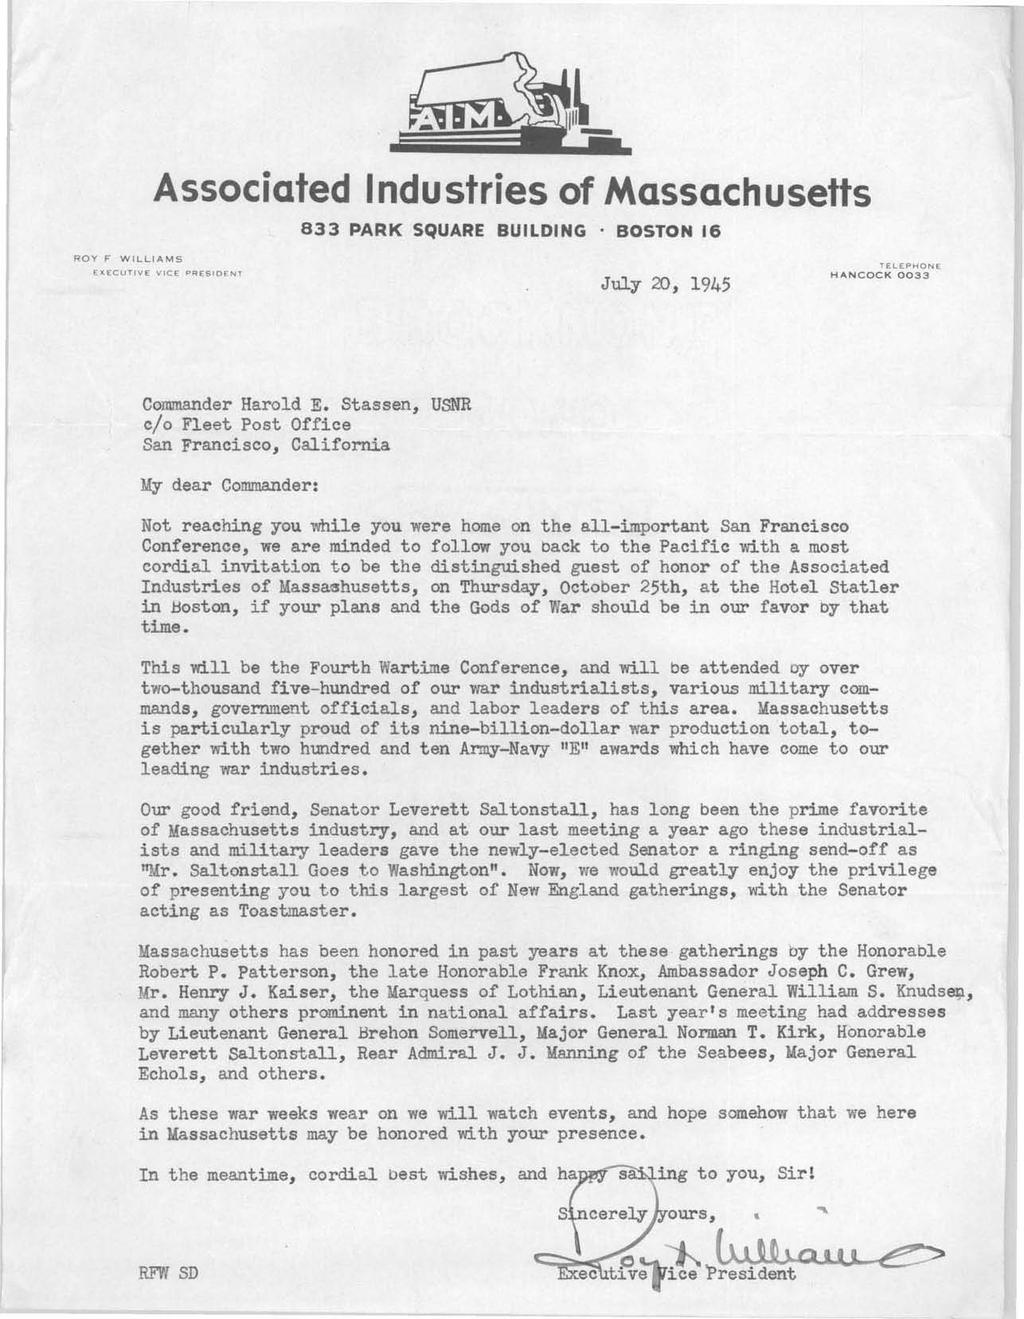 Associated Industries of Massachusetts 833 PARK SQUARE BUILDING. BOSTON 16 ROY F WILLIAMS EXECUTIVE VICE PRESIDENT July 20, 1945 TELEPHONE HANCOCK 0033 Commander Harold E.